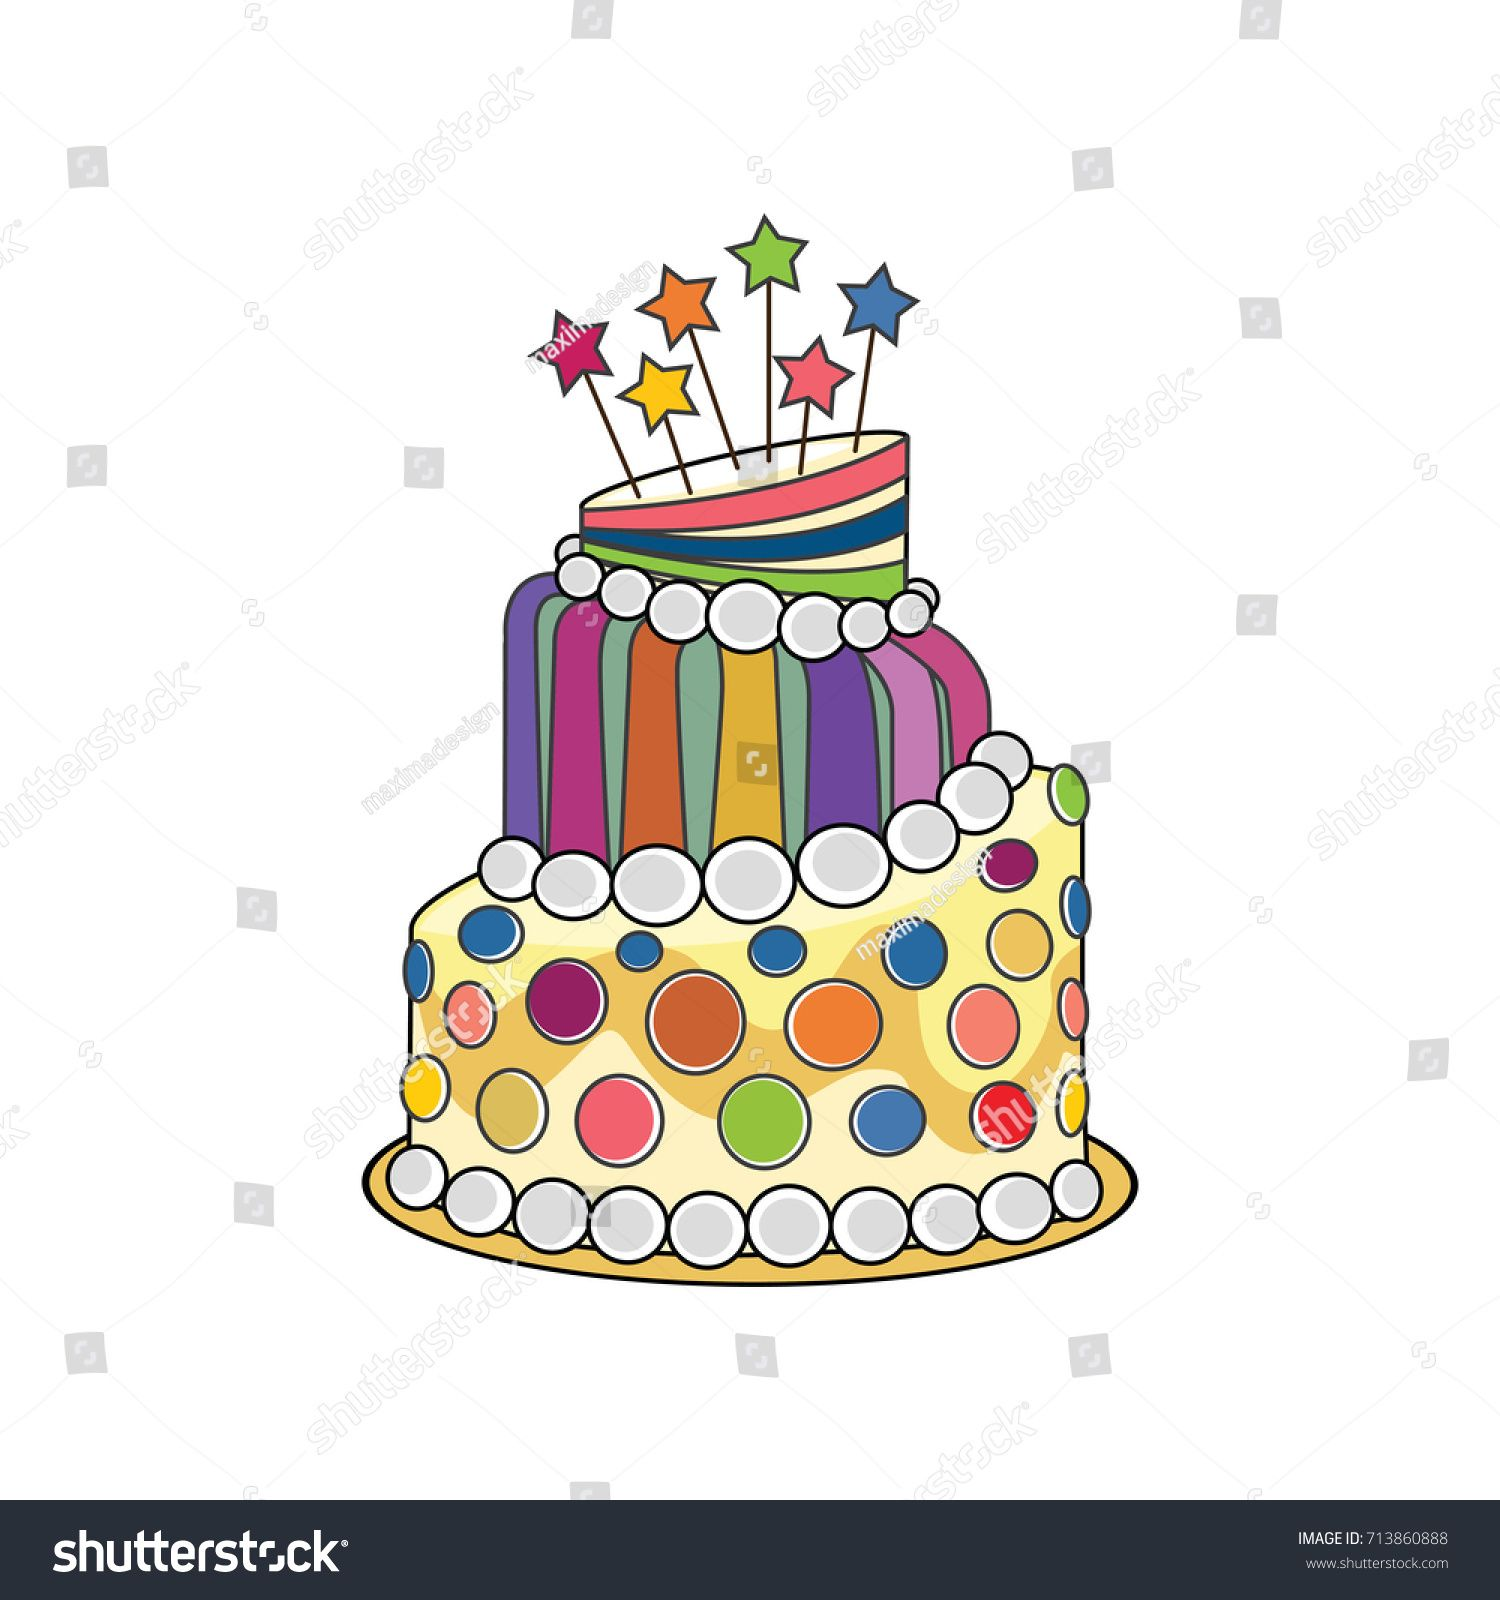 Cute birthday cake with stars vector illustration FOR SALE